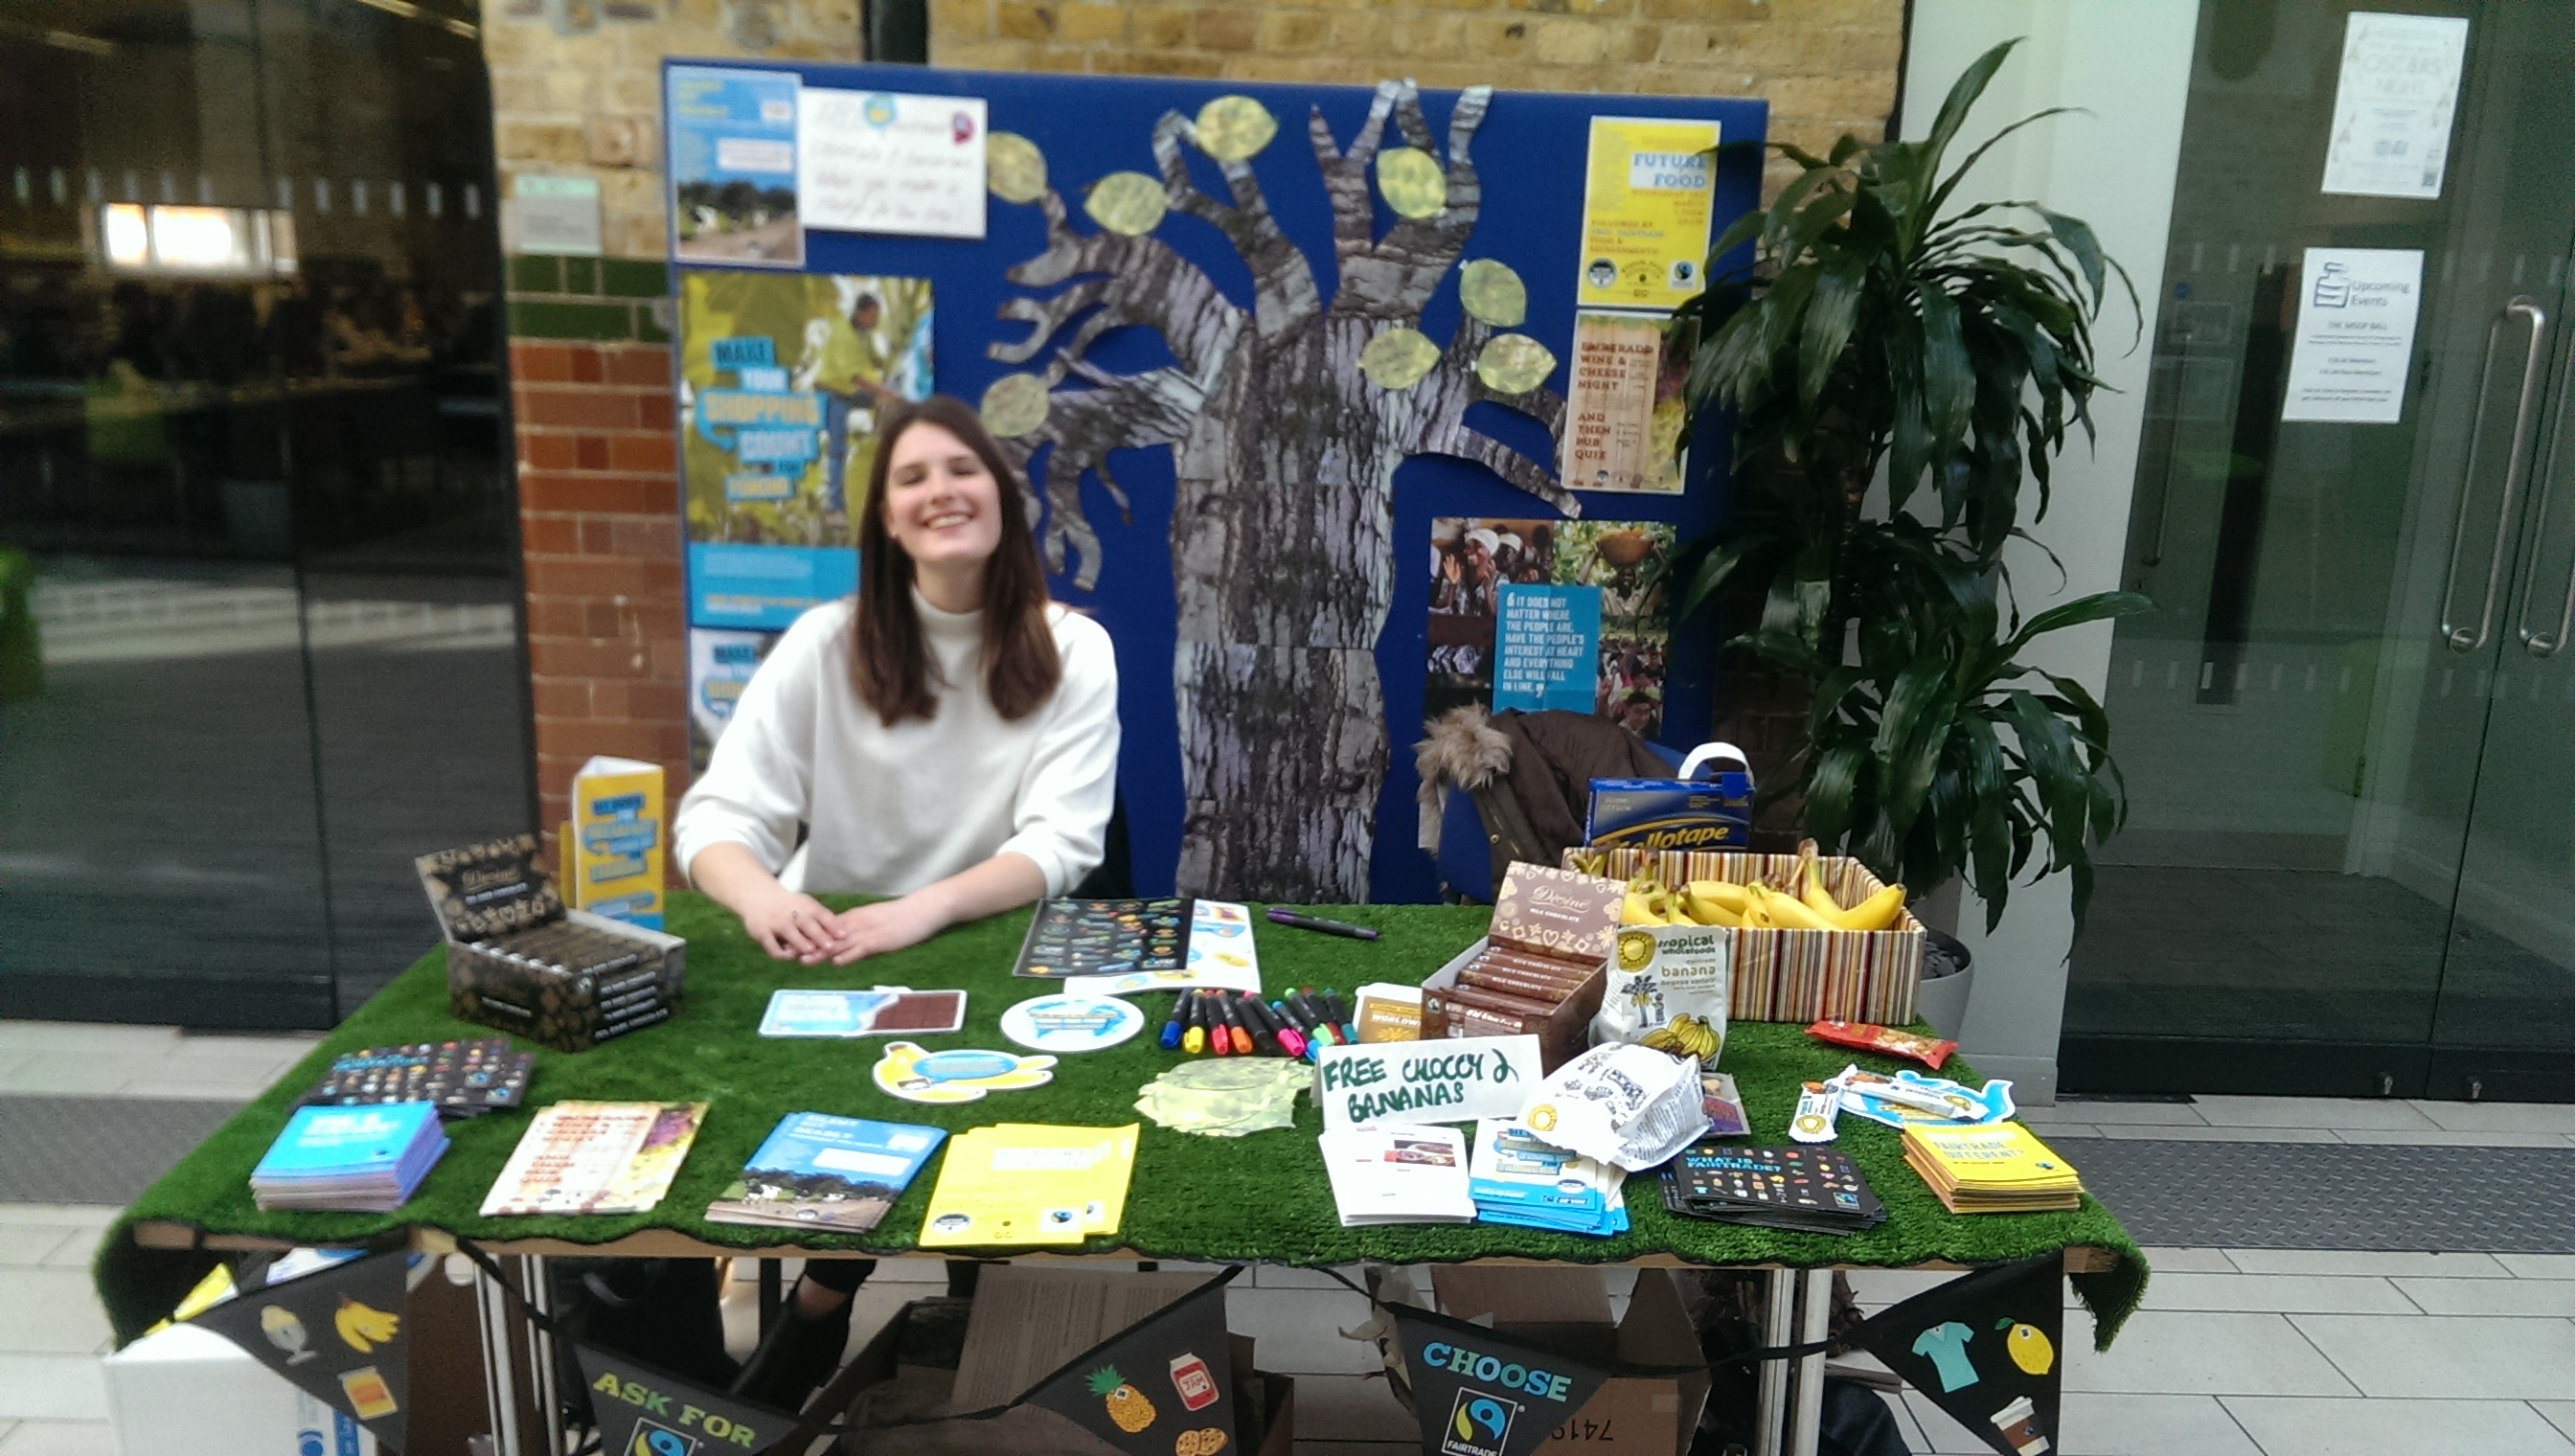 Jade hosting a Fairtrade stand in 2016